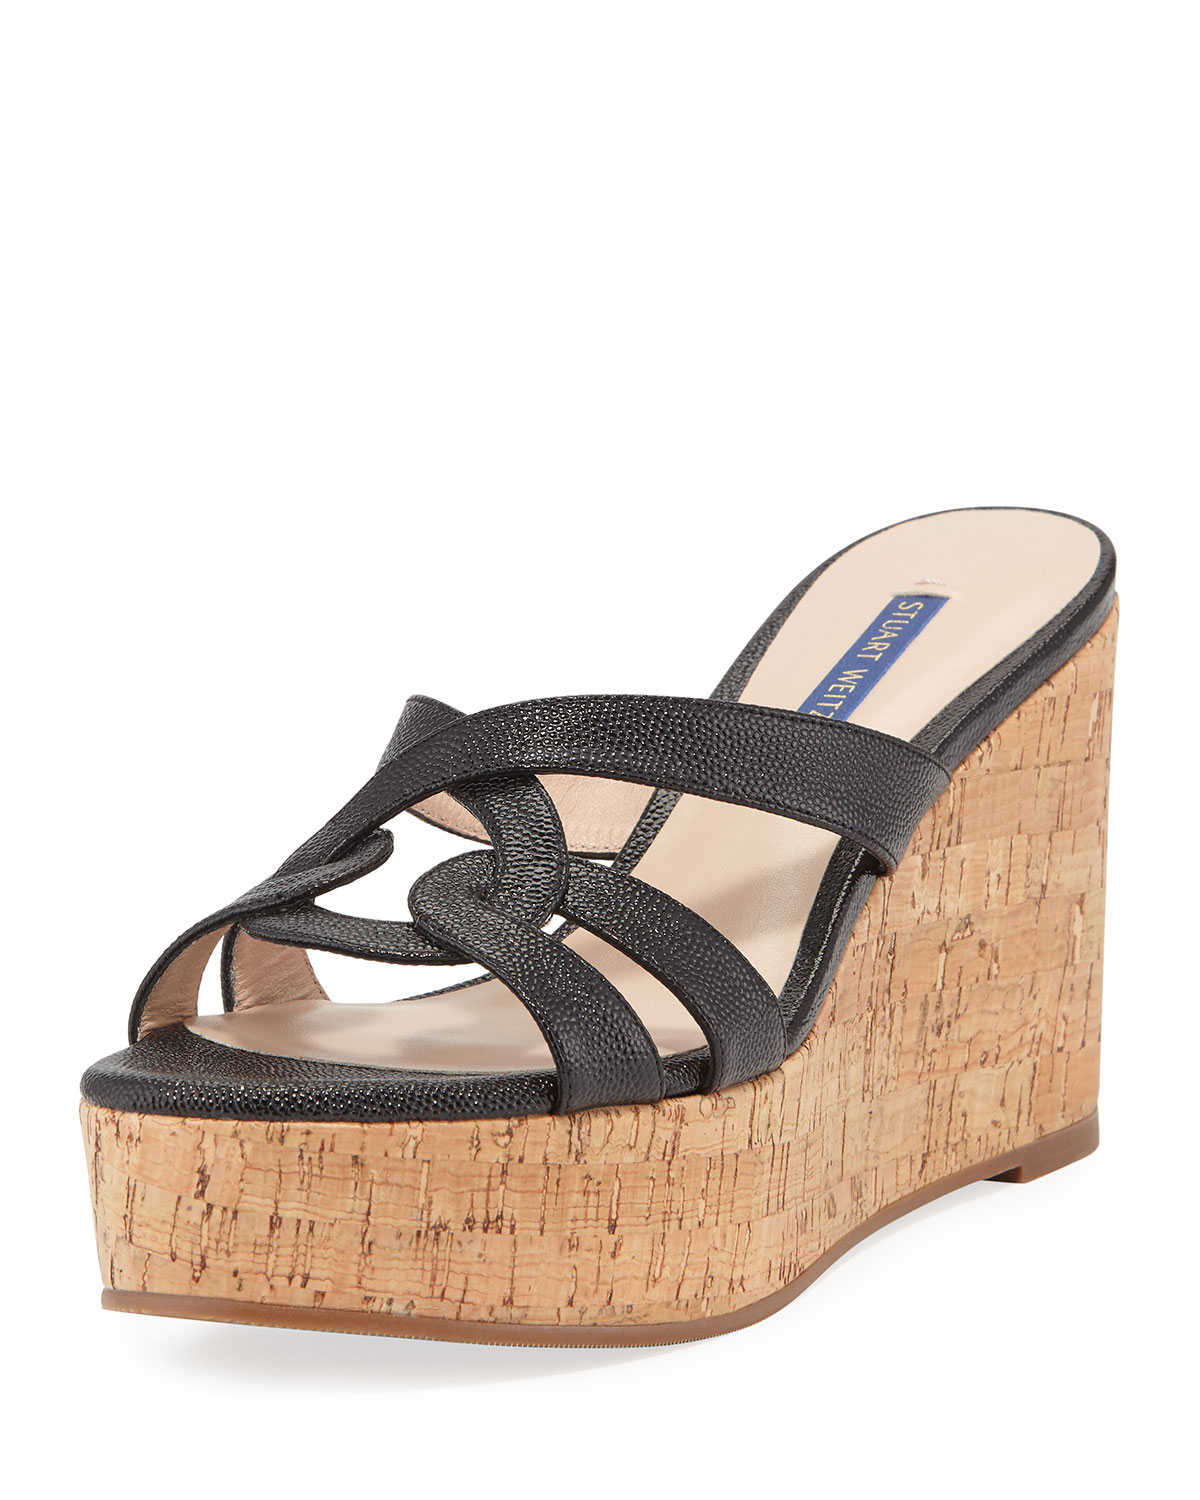 25d0cb1150bf Stuart Weitzman Cadence Patent Leather Wedge Sandals